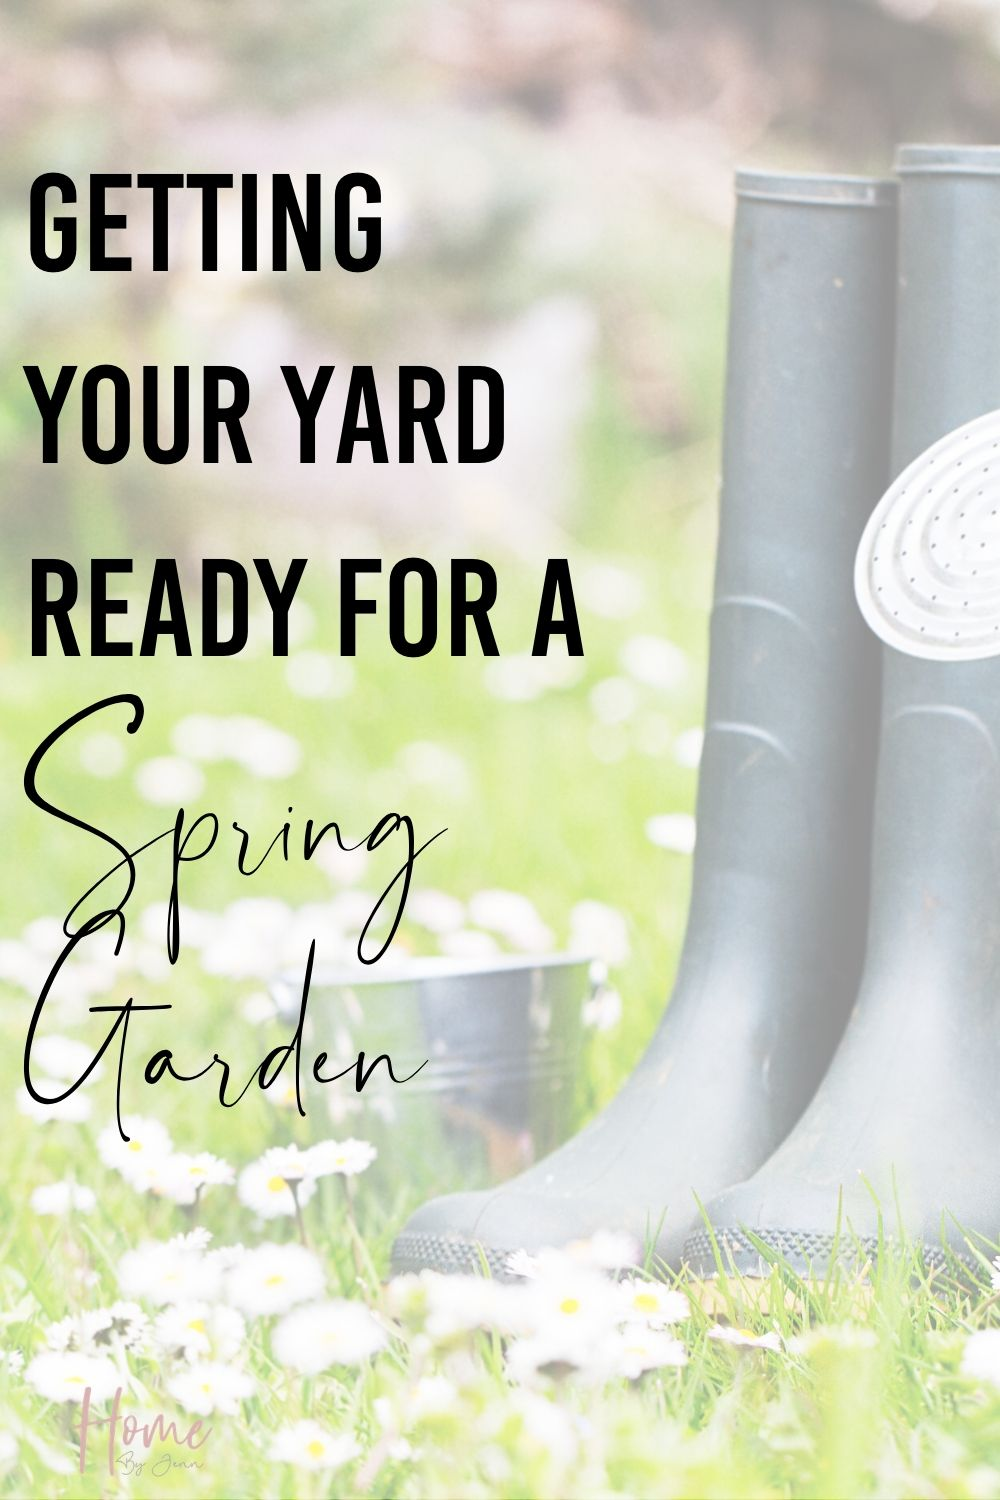 Get your garden ready for spring. Take these spring gardening tips so you can enjoy a spring garden. Learn what tasks should be done and how to care for your garden in the spring. via @homebyjenn